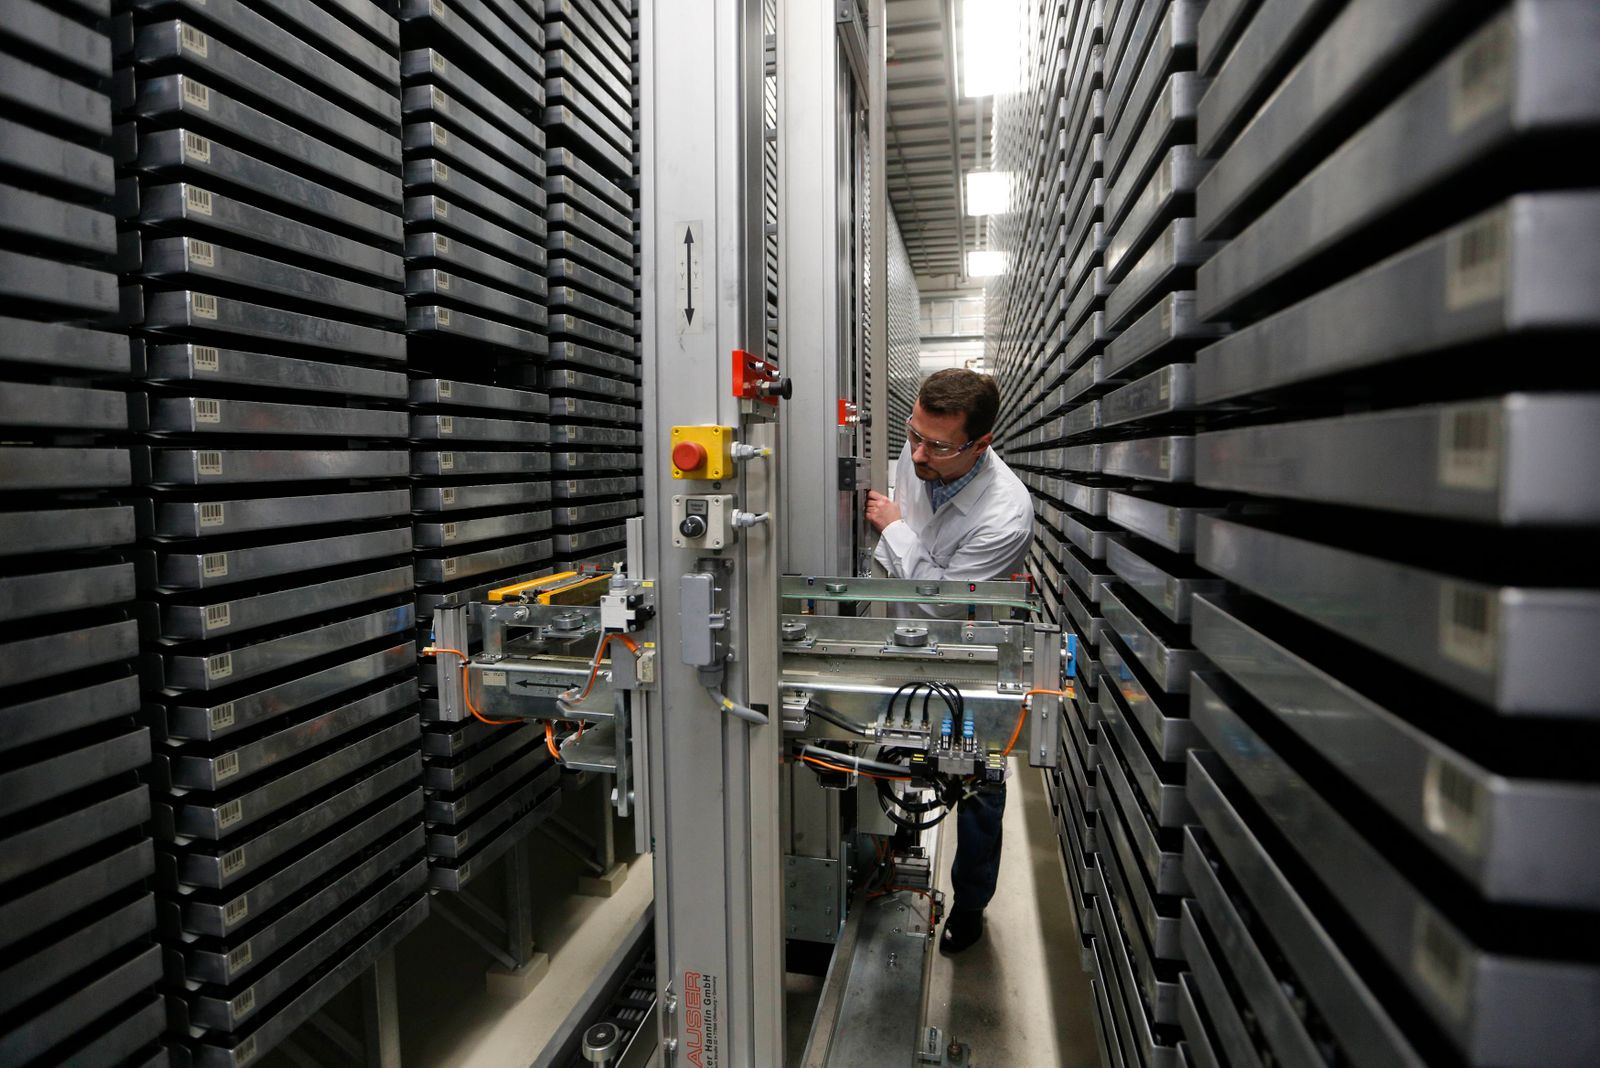 An employee monitors an automated substance library at the Pharma Research Center of Bayer HealthCare in Wuppertal